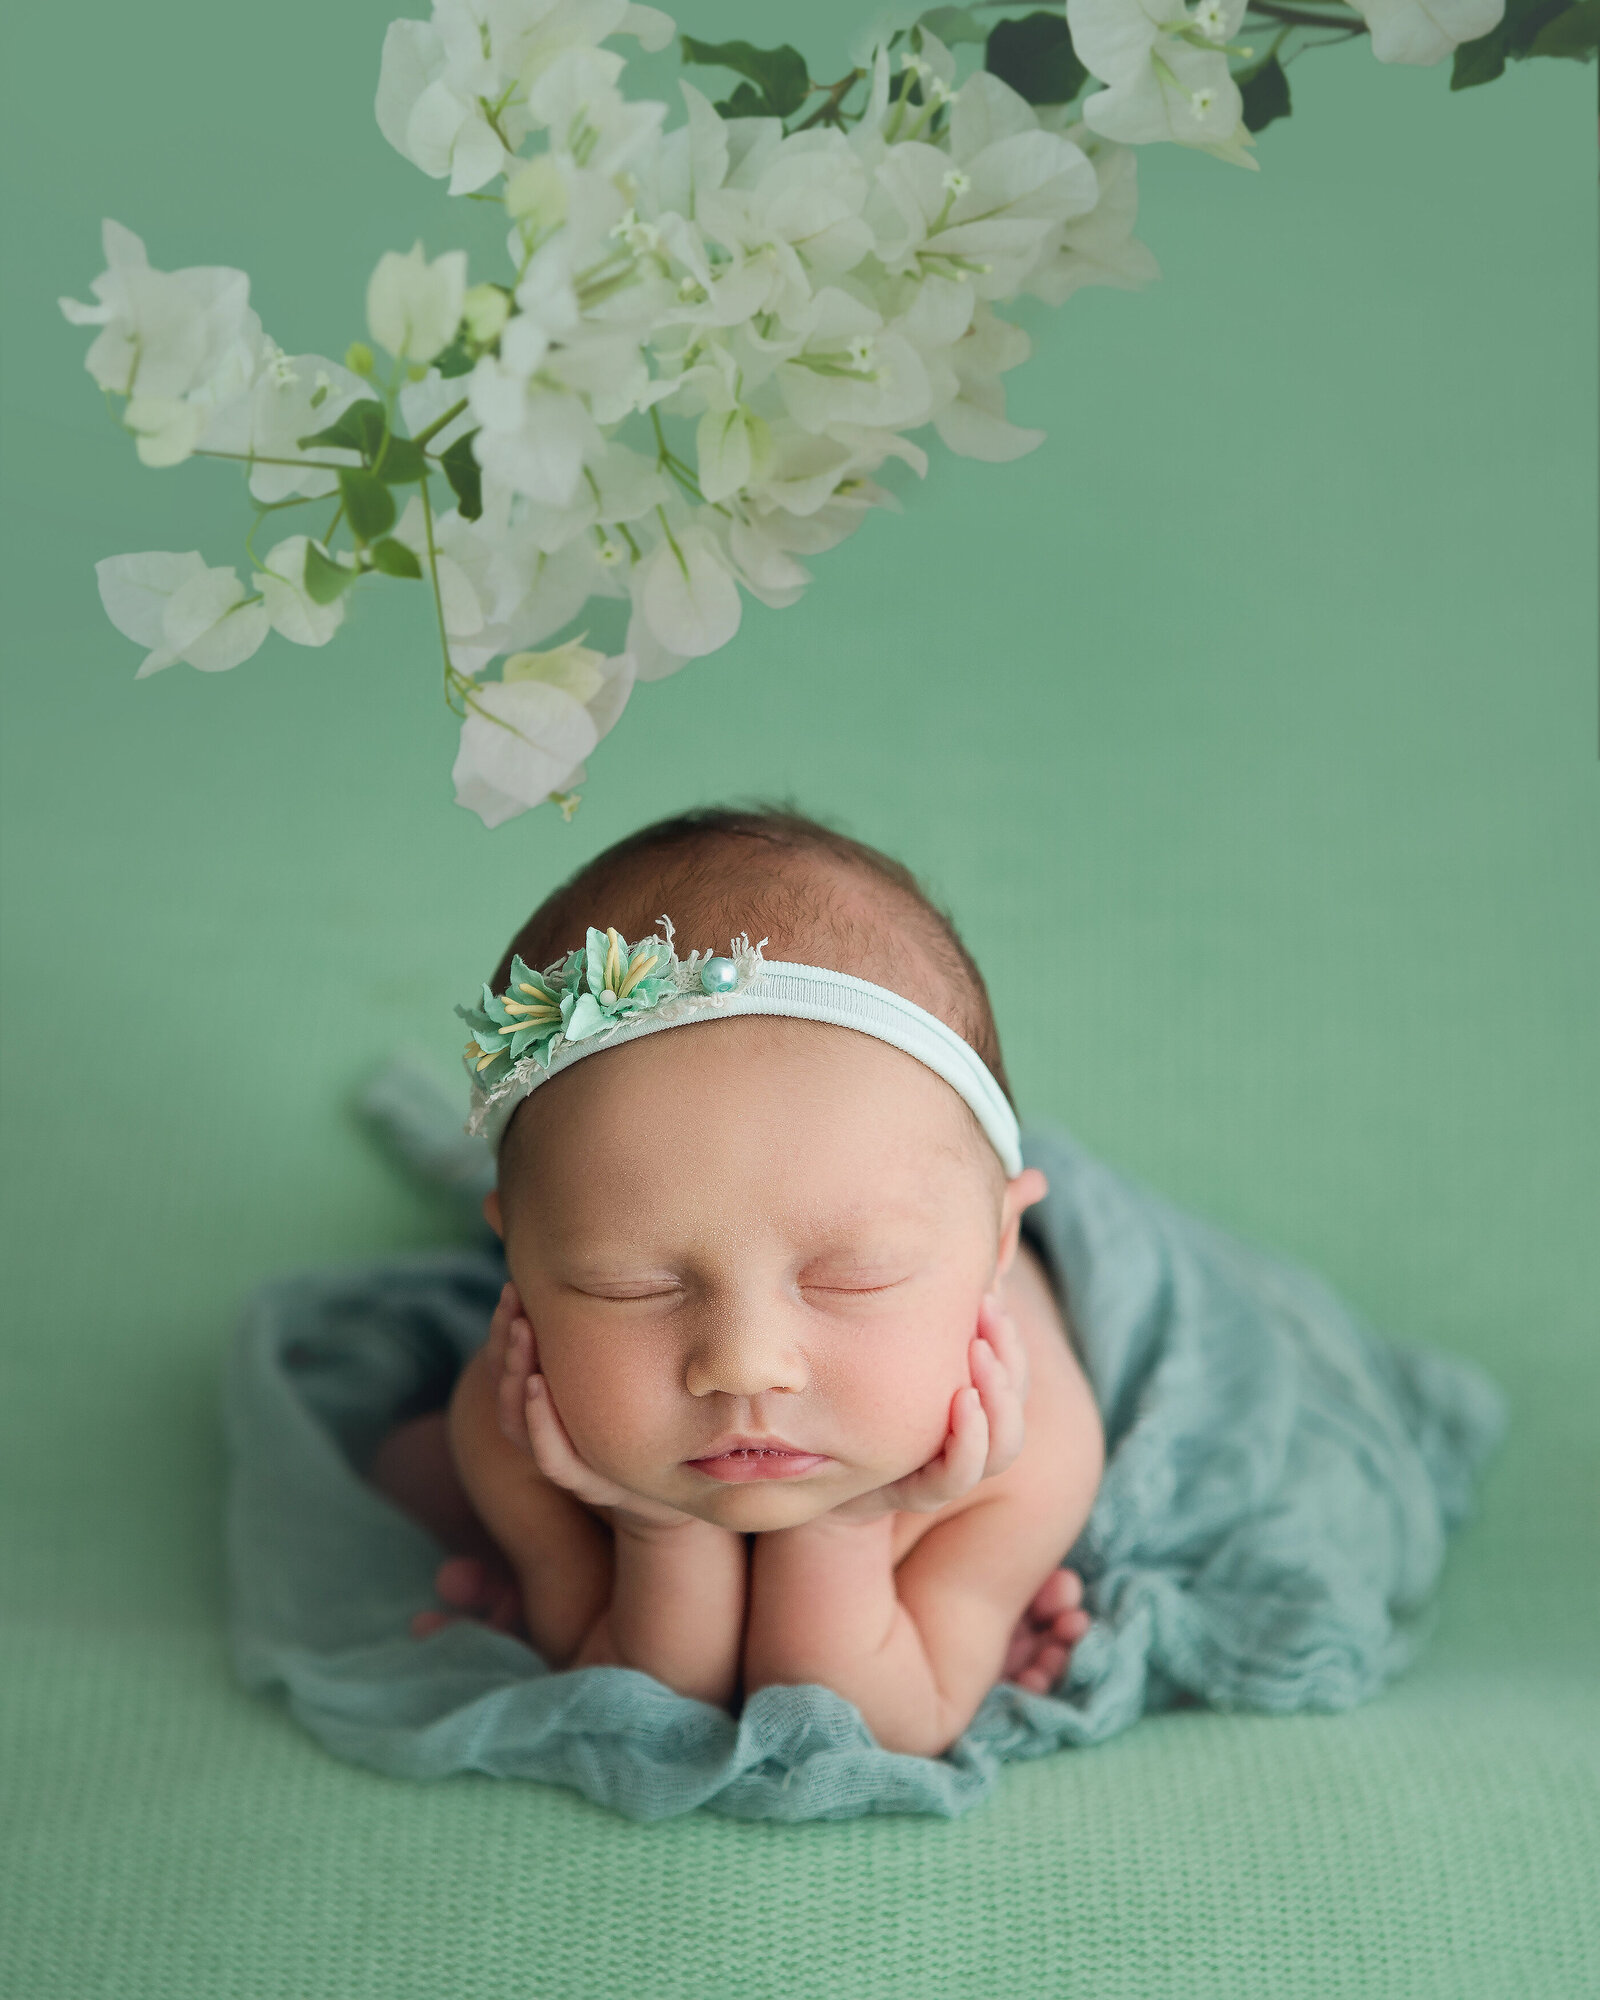 Professional studio portrait of newborn baby posed asleep, green backdrop